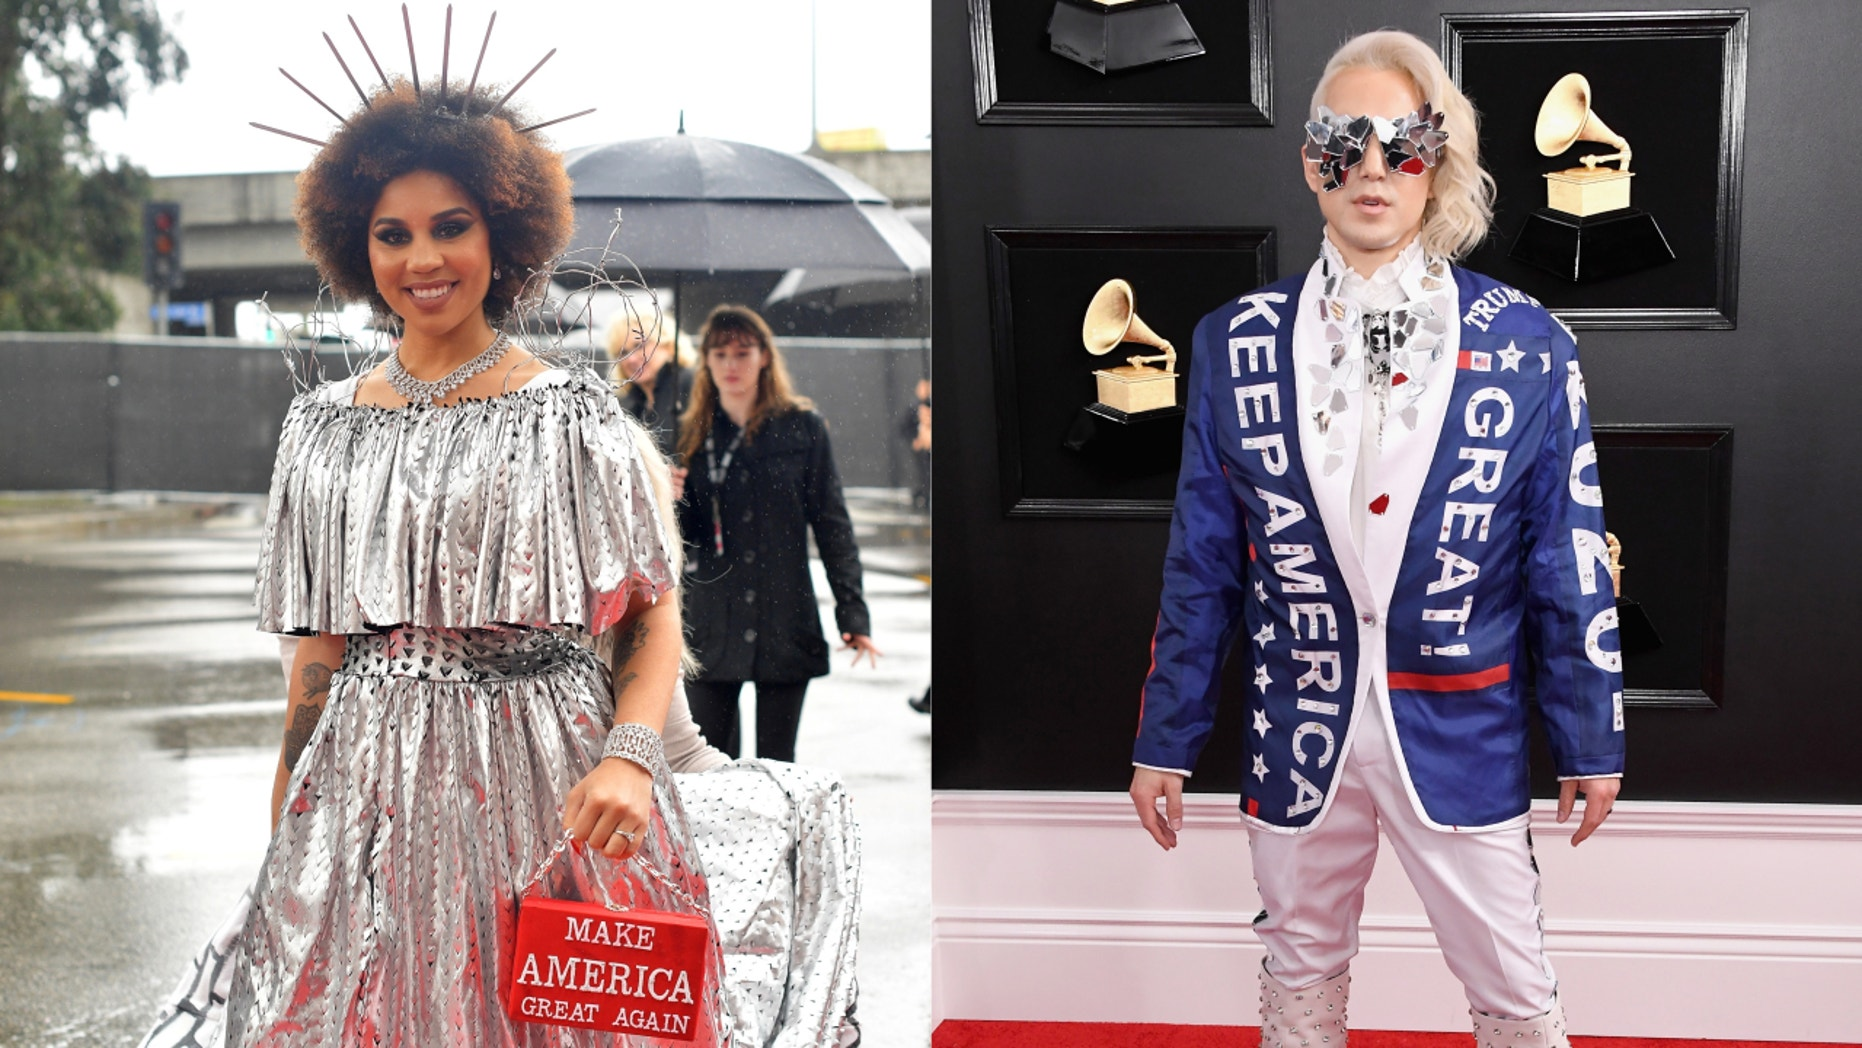 Trump supporters make fashion statement on GRAMMYs red carpet